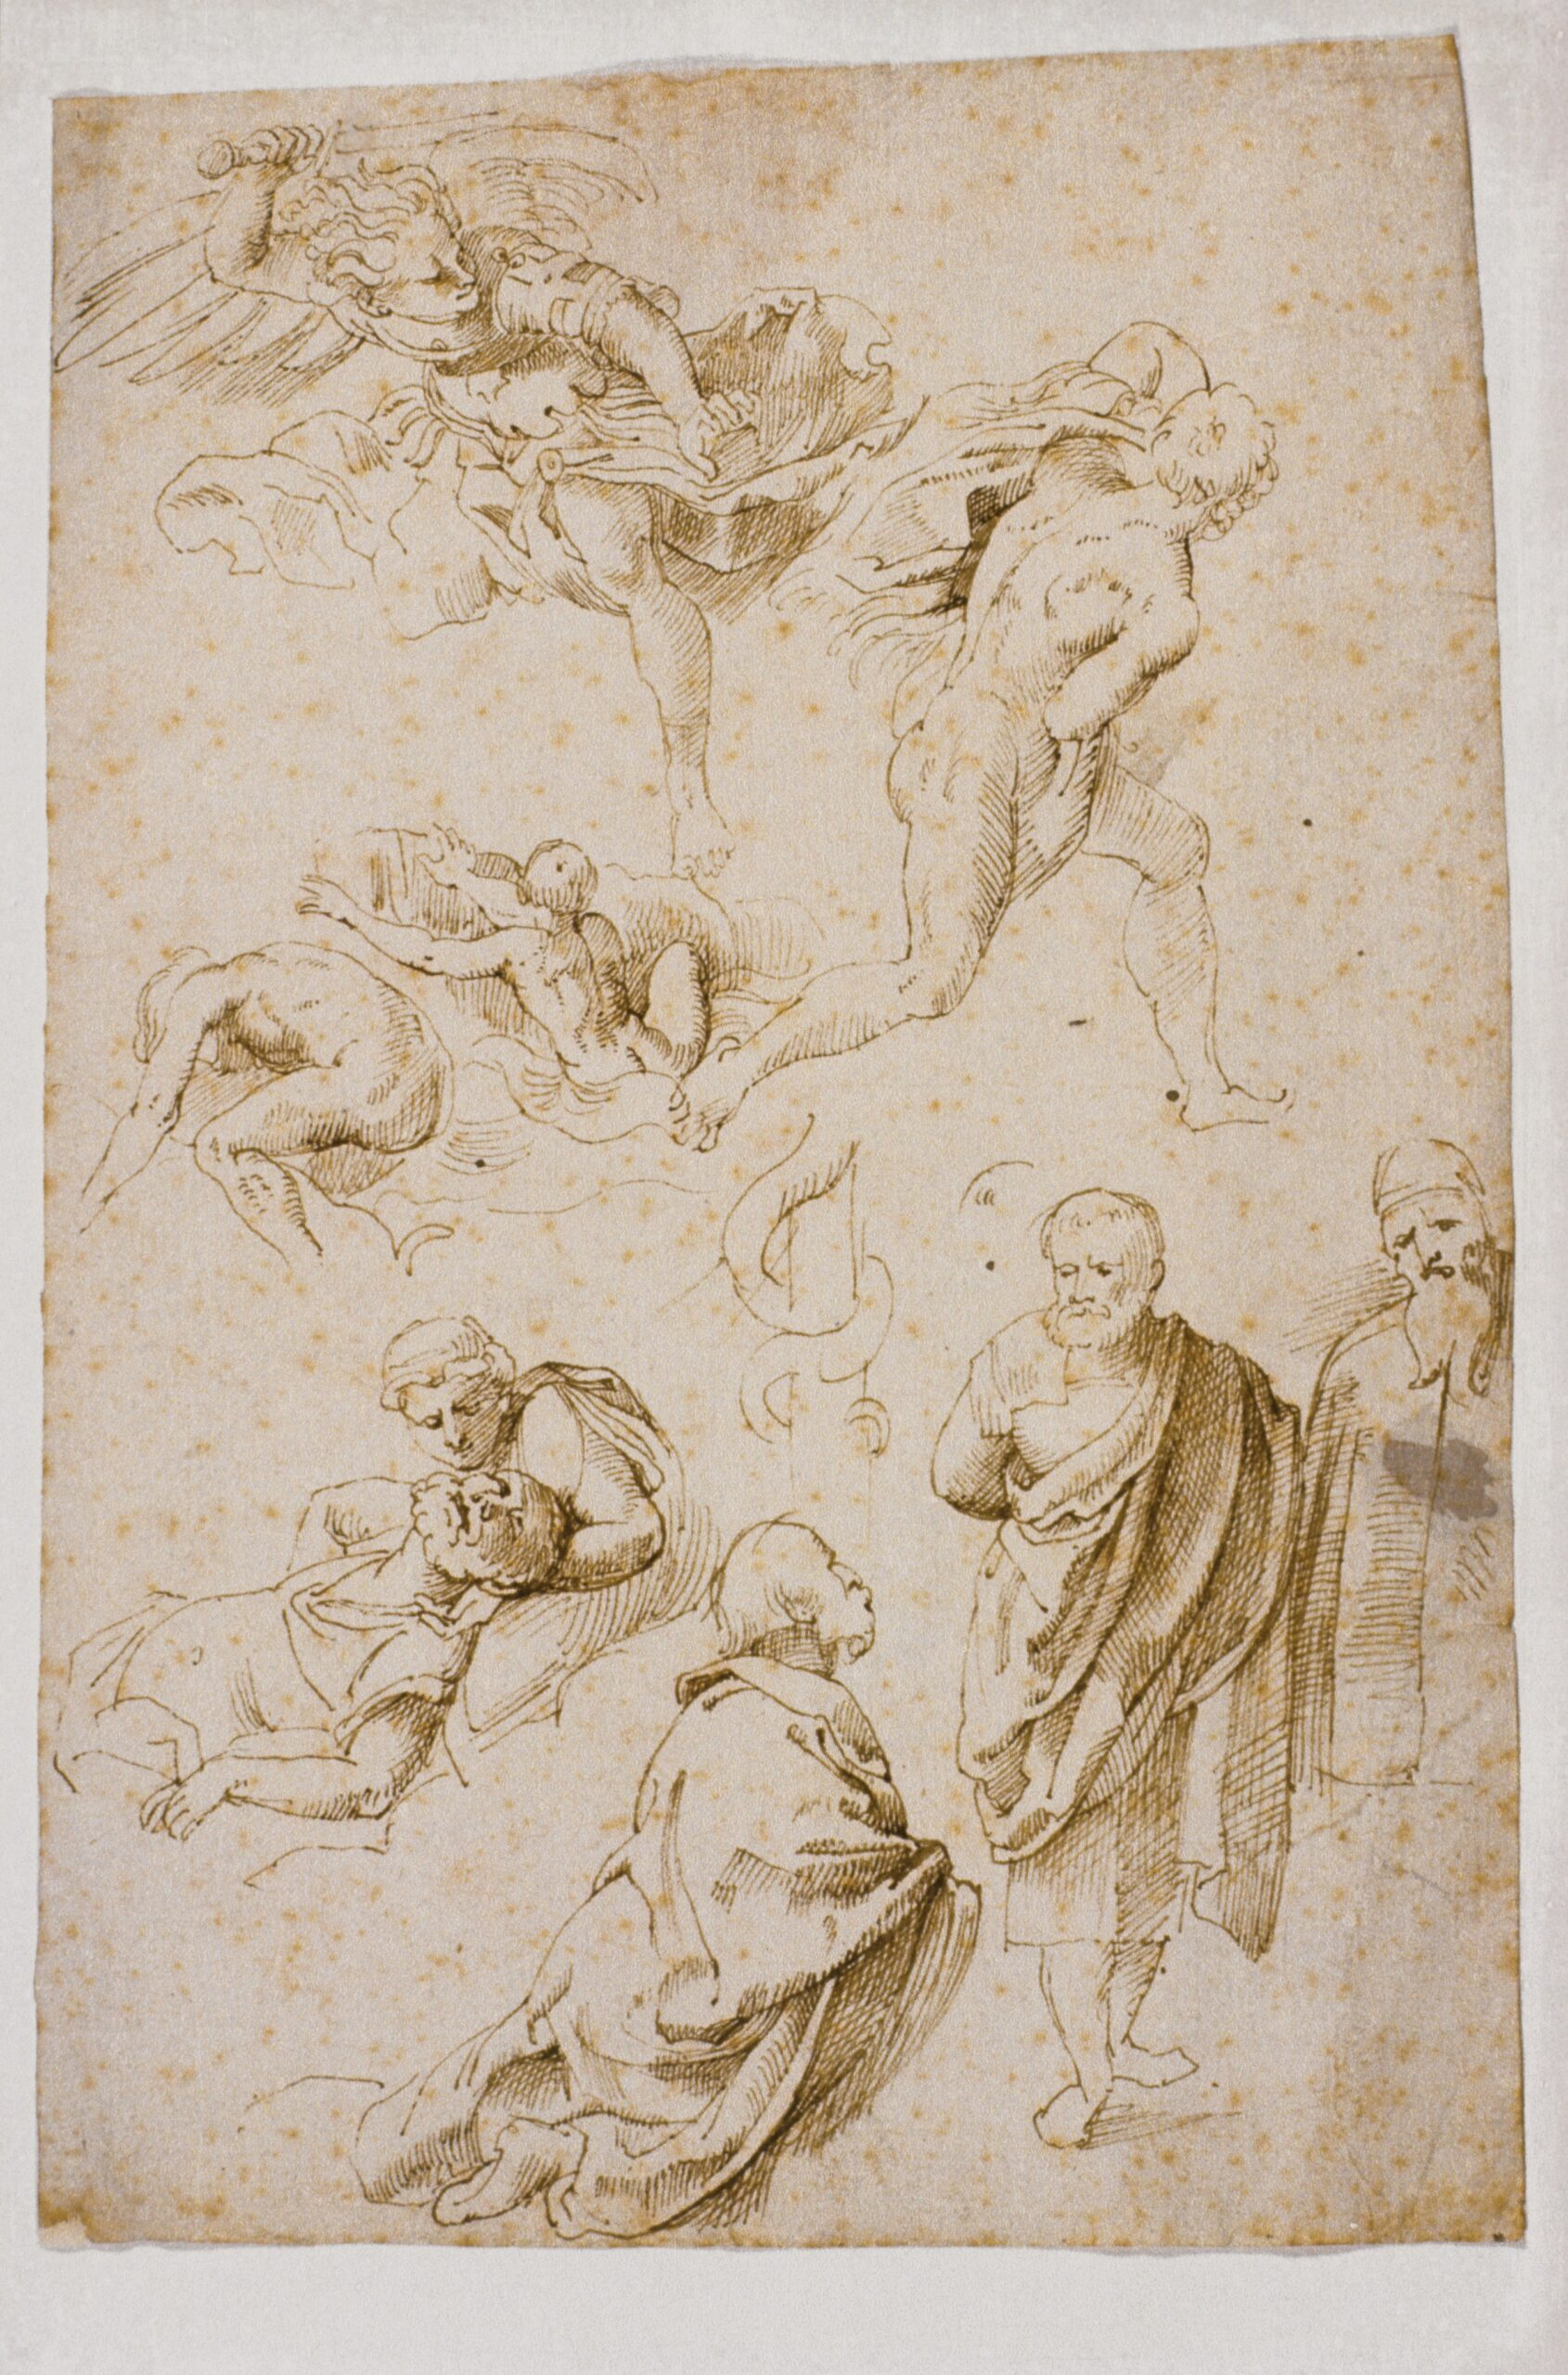 Peter Paul Rubens (1577-1640), Copies of Tobias Stimmer's Bible Illustrations, pen and brown ink, 19 x 13..5 cm Liberna Collection, inv. no. 71